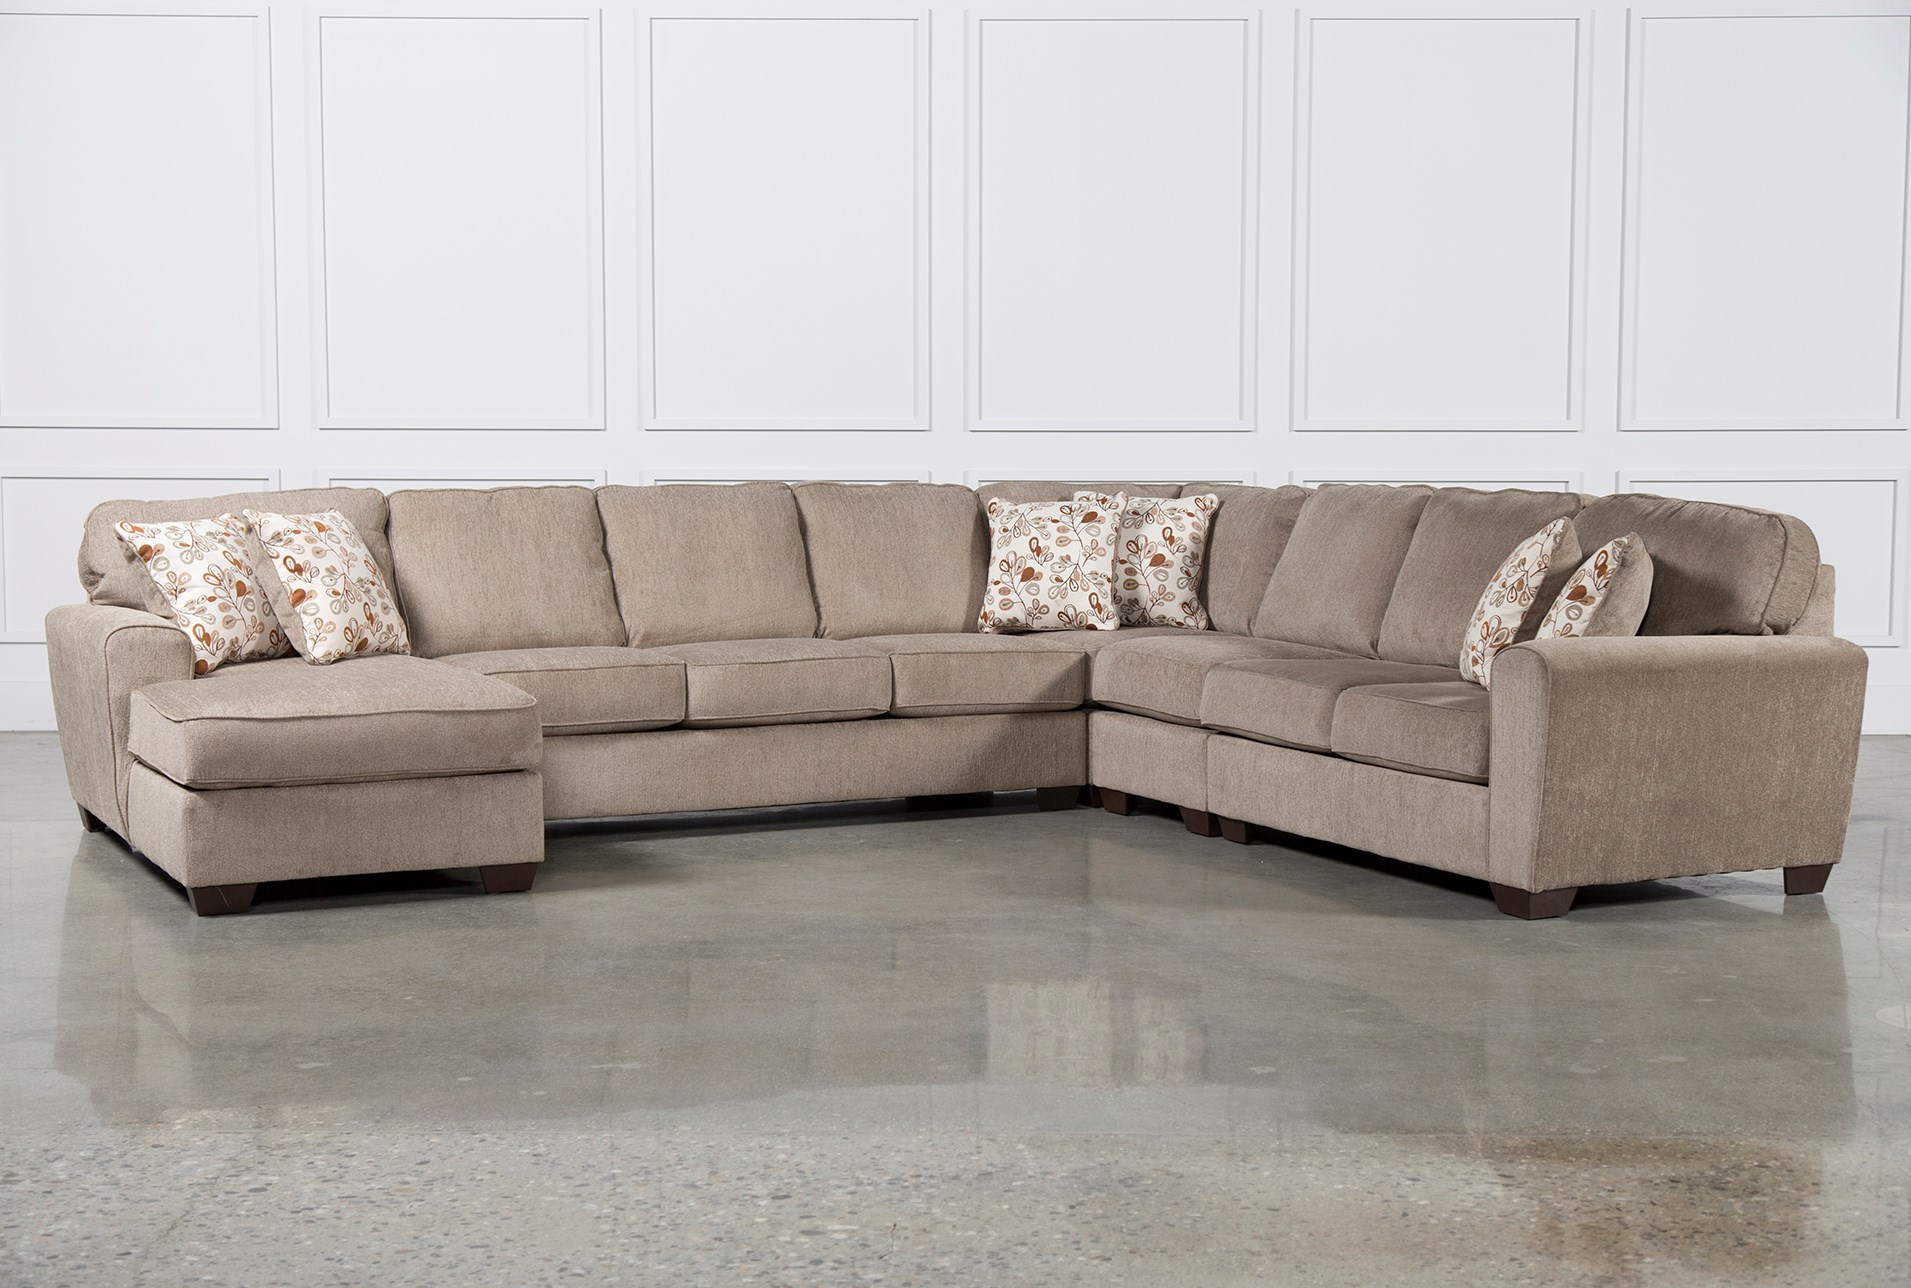 Patola Park 5 Piece Sectional W Laf Chaise Living Spaces ~ How To Measure A Sectional Sofa With Wedge